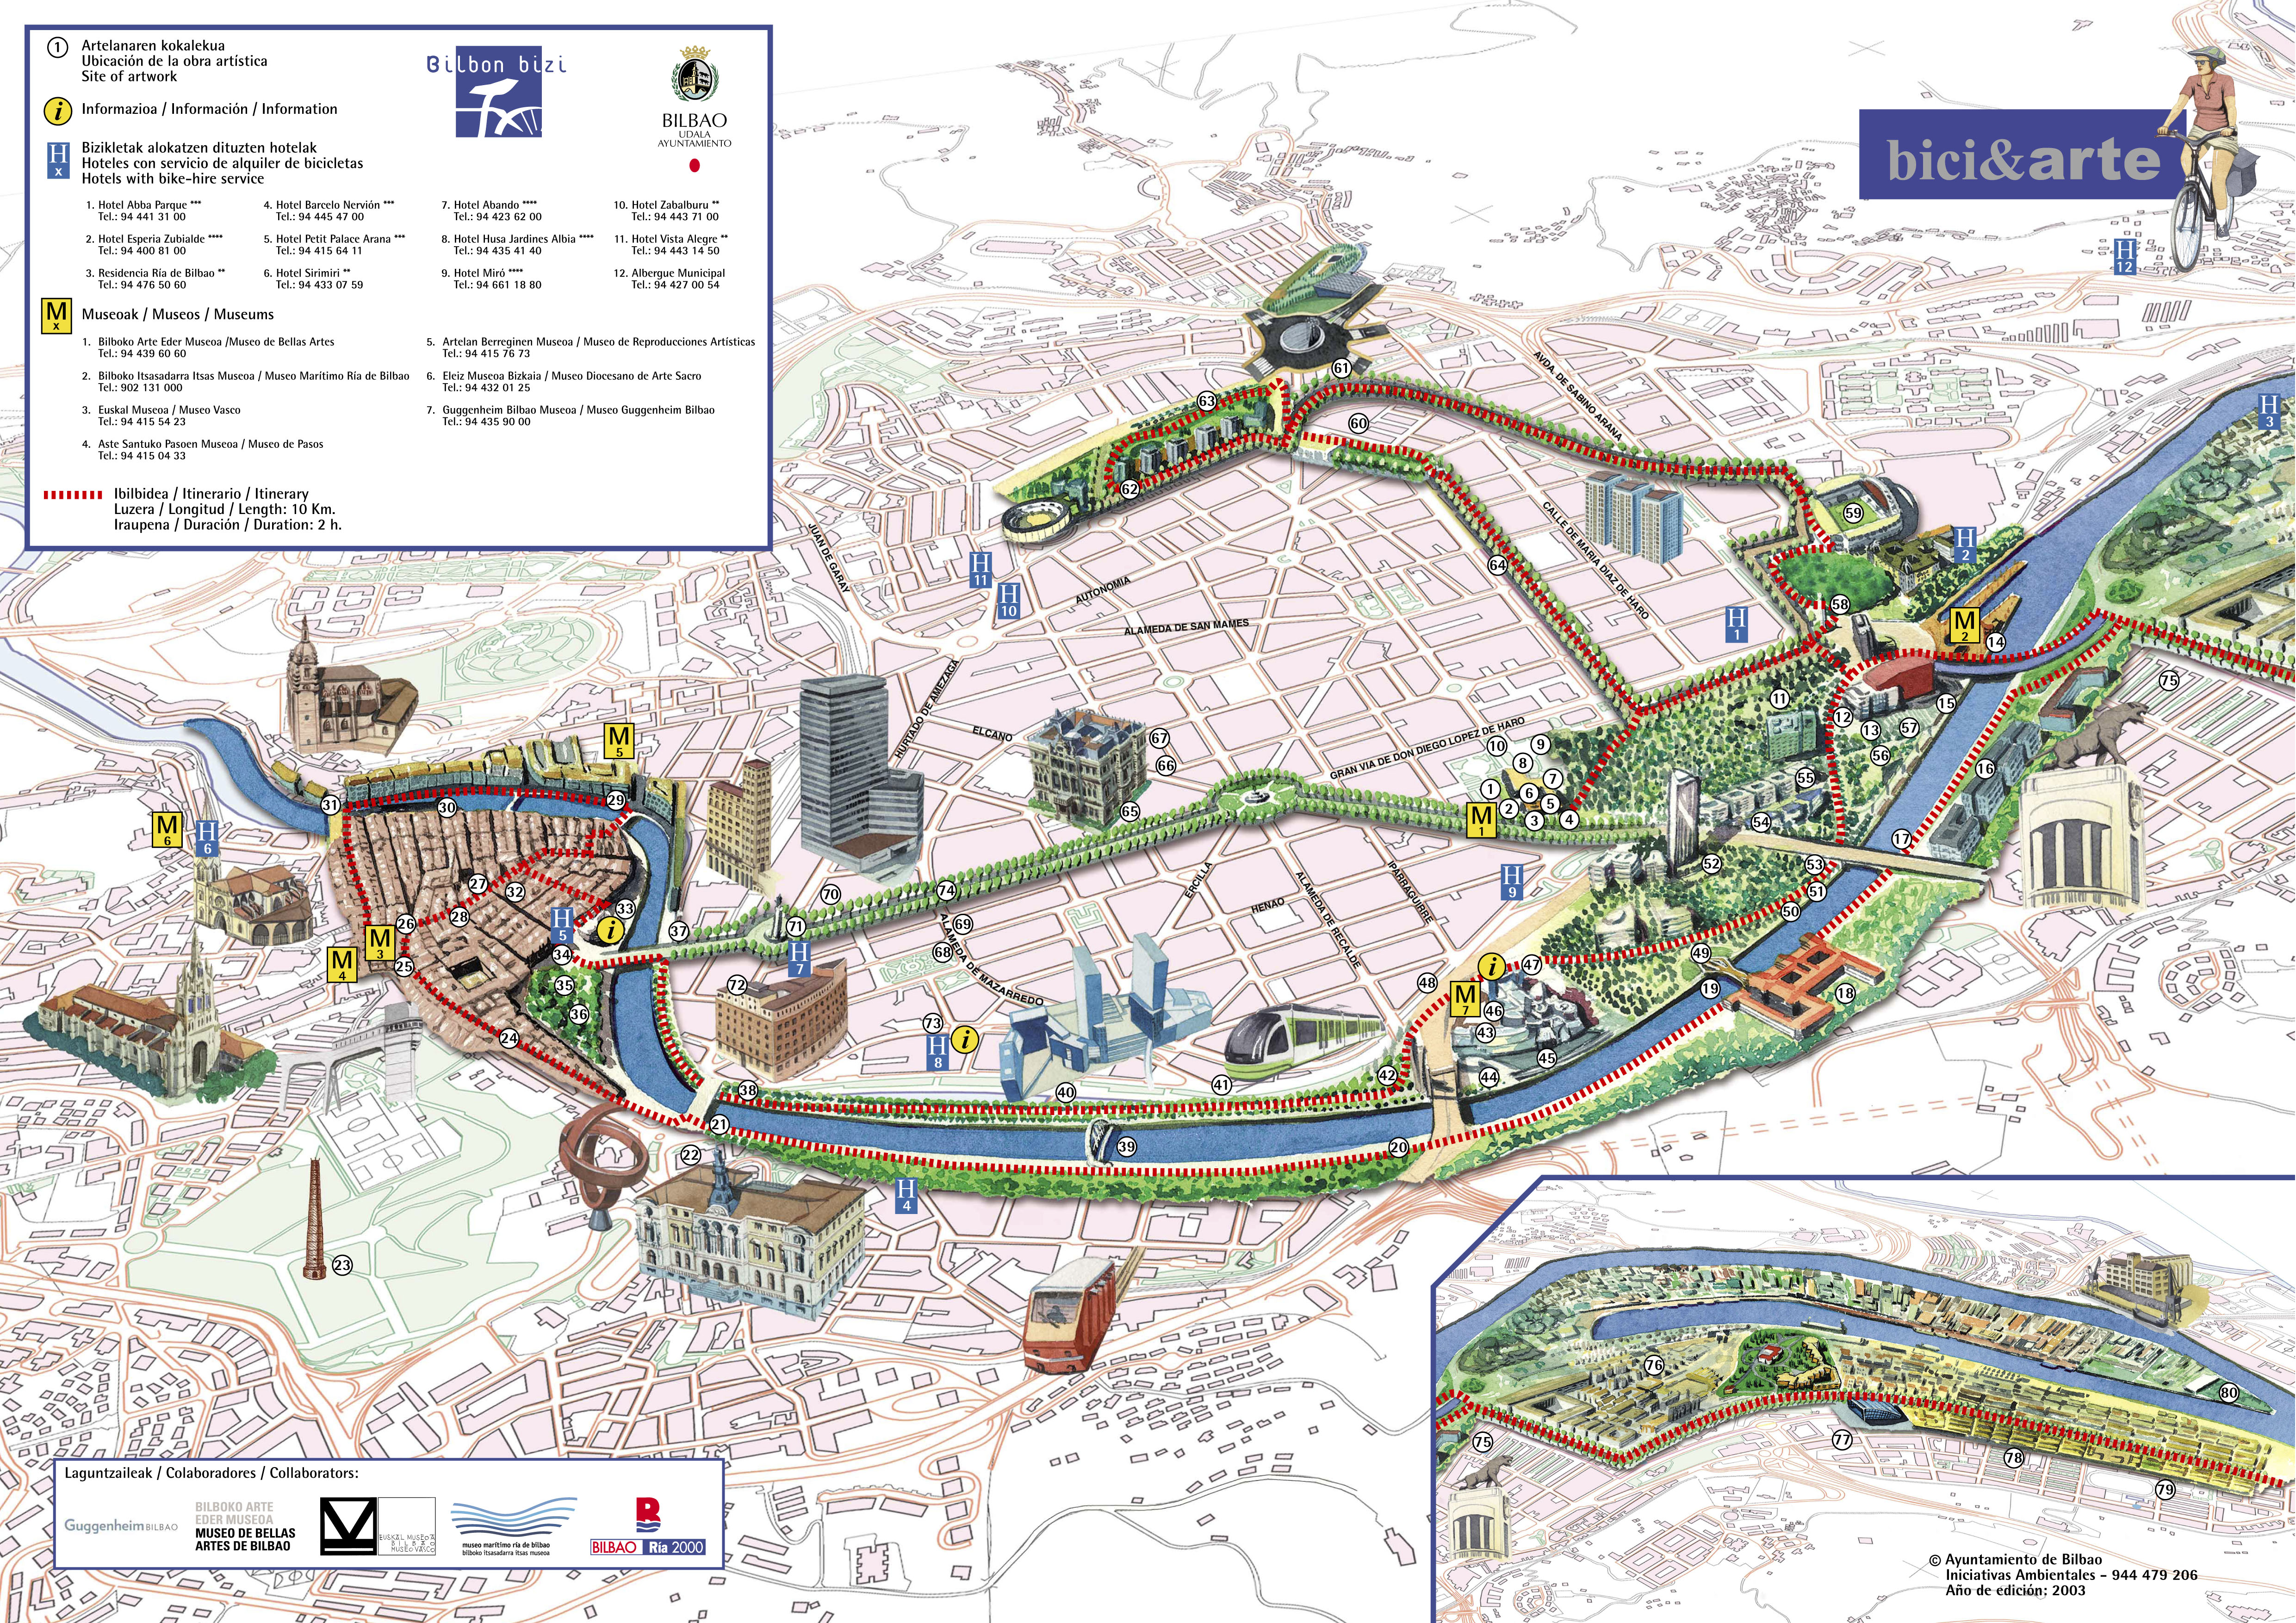 Bike routes and paths in Bilbao 2003